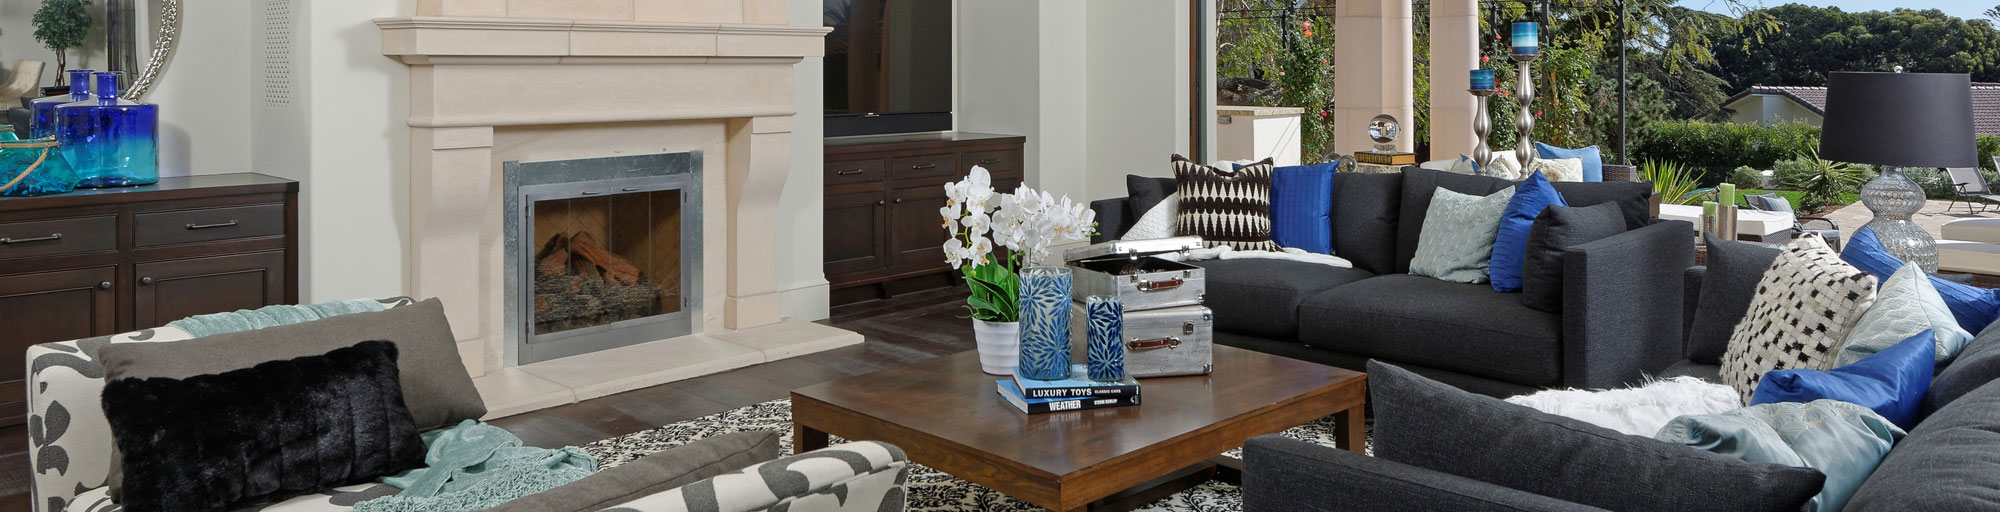 Living room staging with grey and blue accents